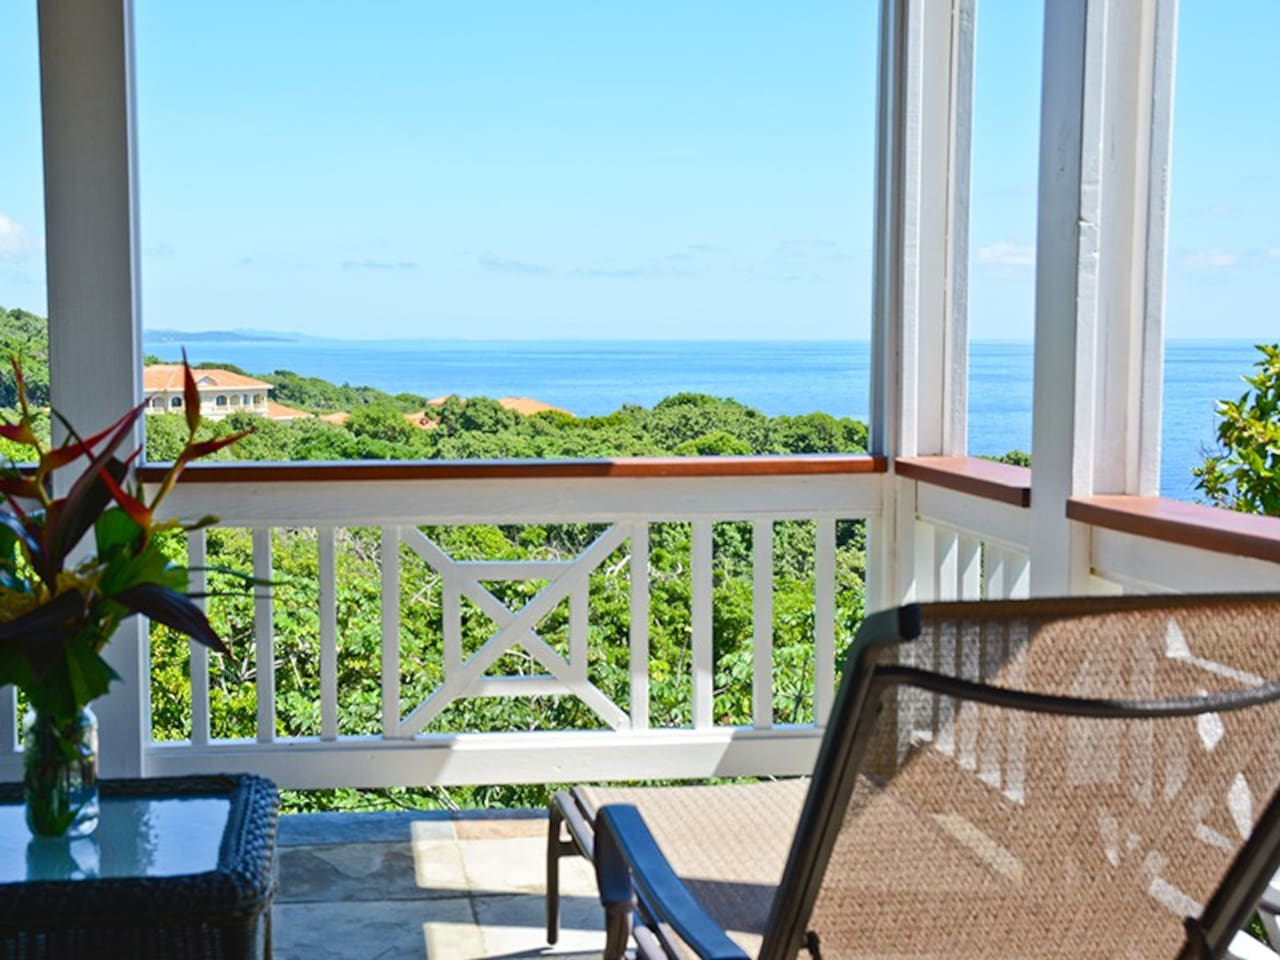 Gecko Loco overlooks both the South and North shores of Roatan`s stunning coastline.